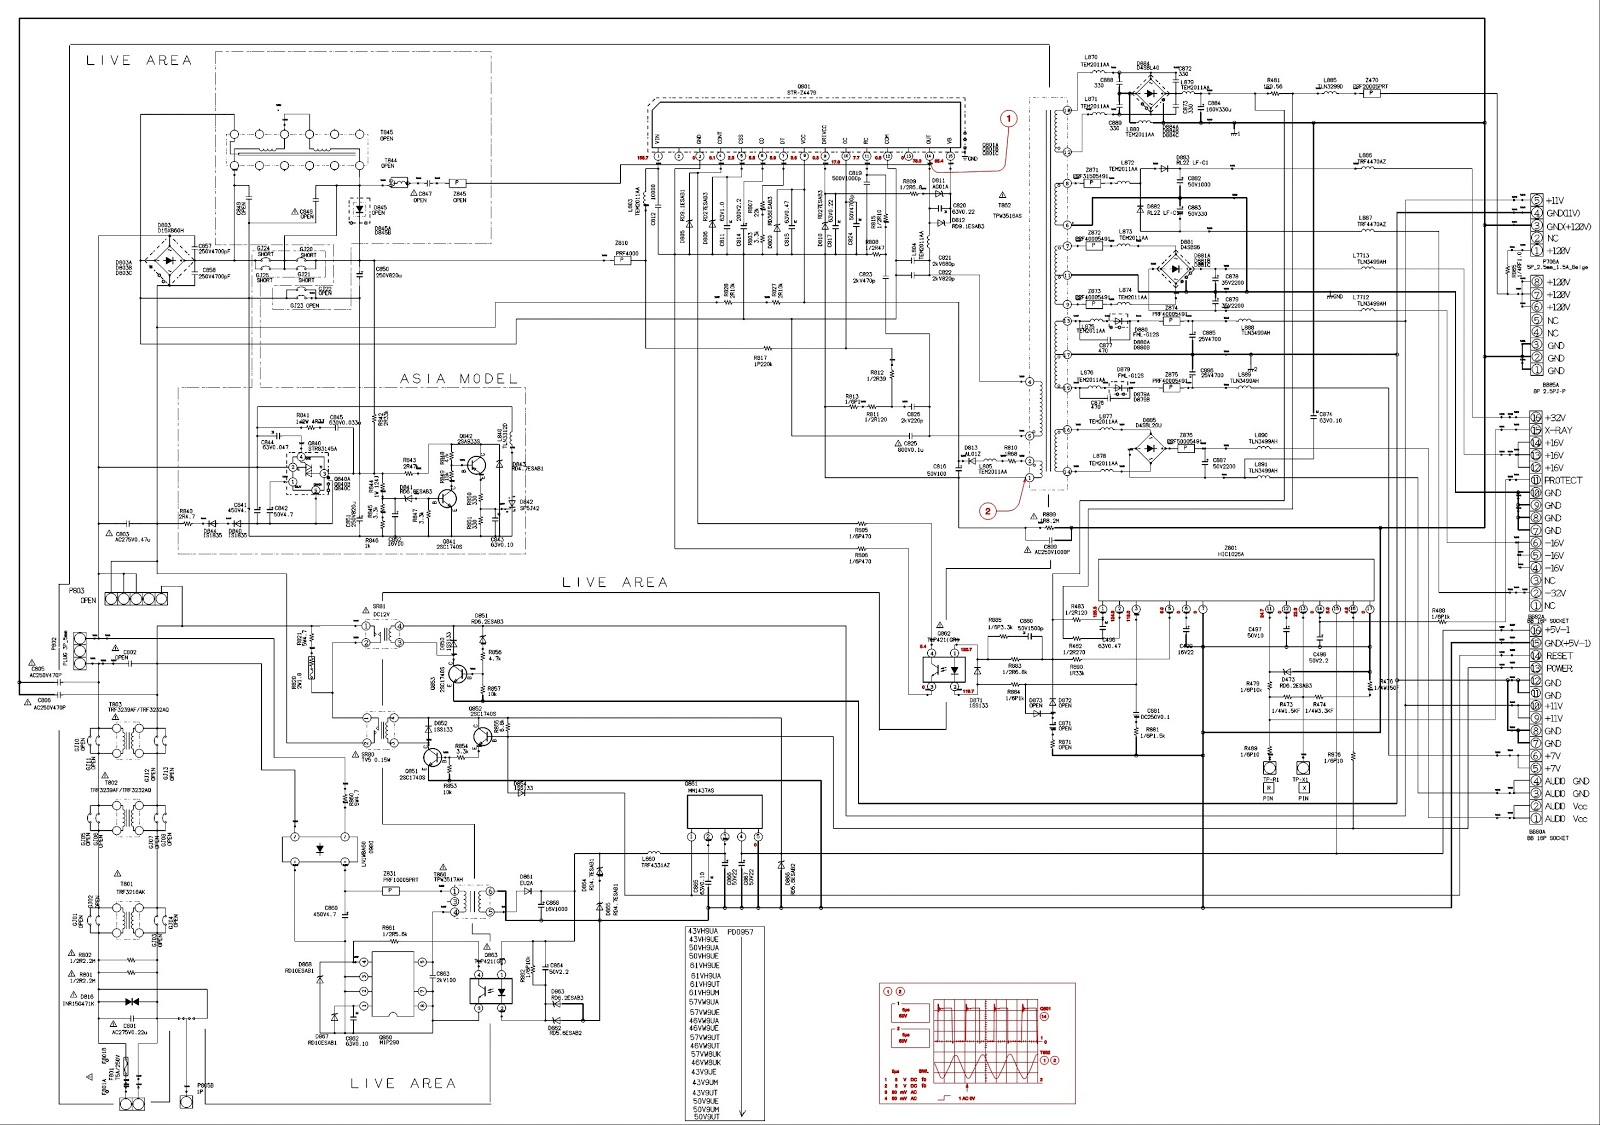 power%2B %2Bsmps toshiba 50 inch projection tv smps schematic electro help toshiba motor wiring diagram at bayanpartner.co